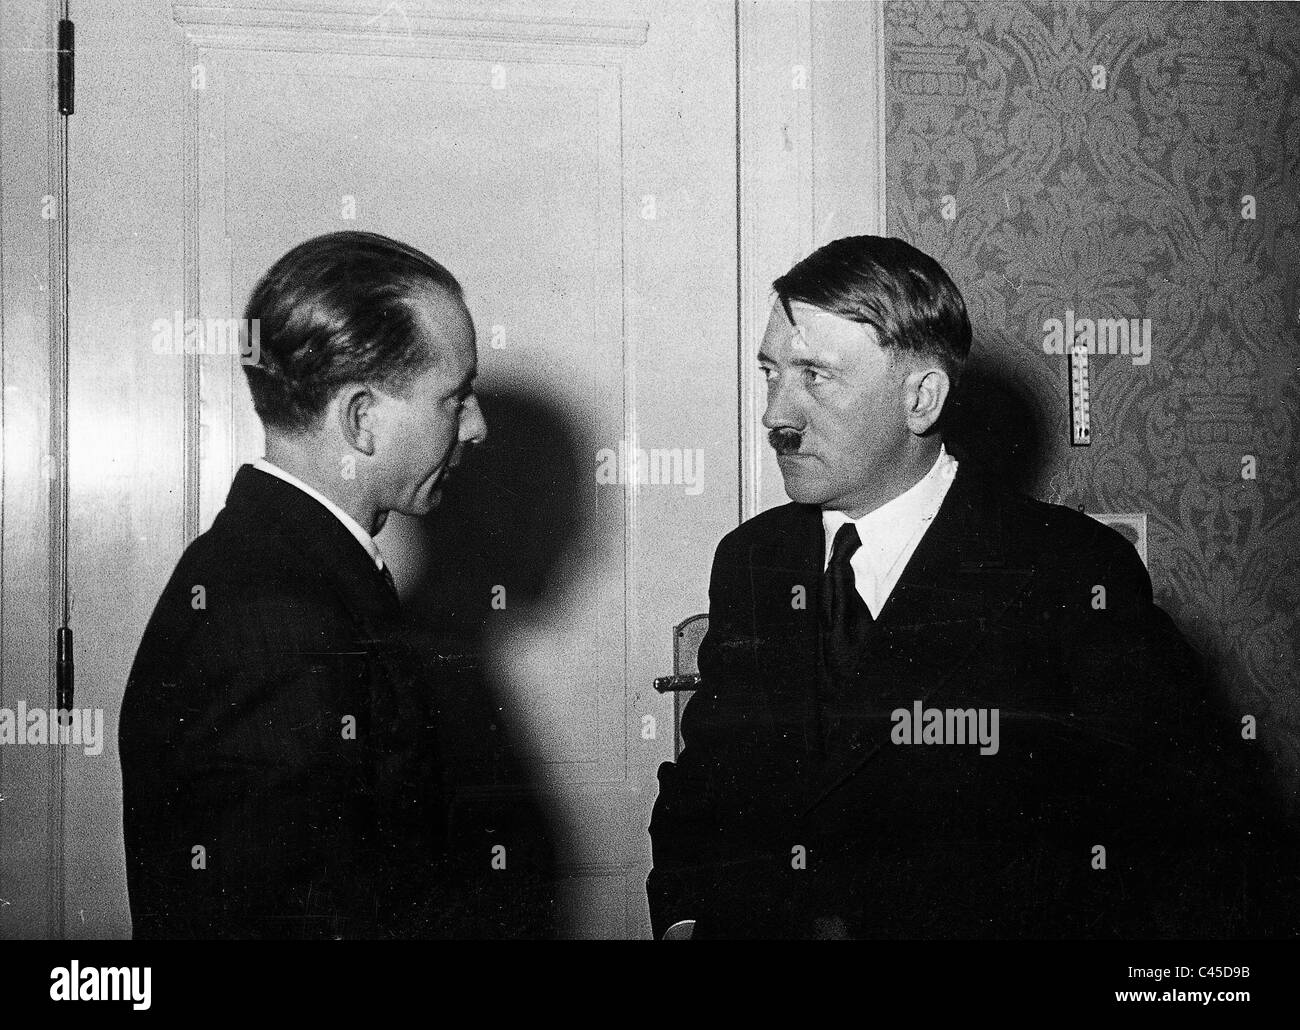 Hitler and Dietrich (left) on 30/01/1933 - Stock Image